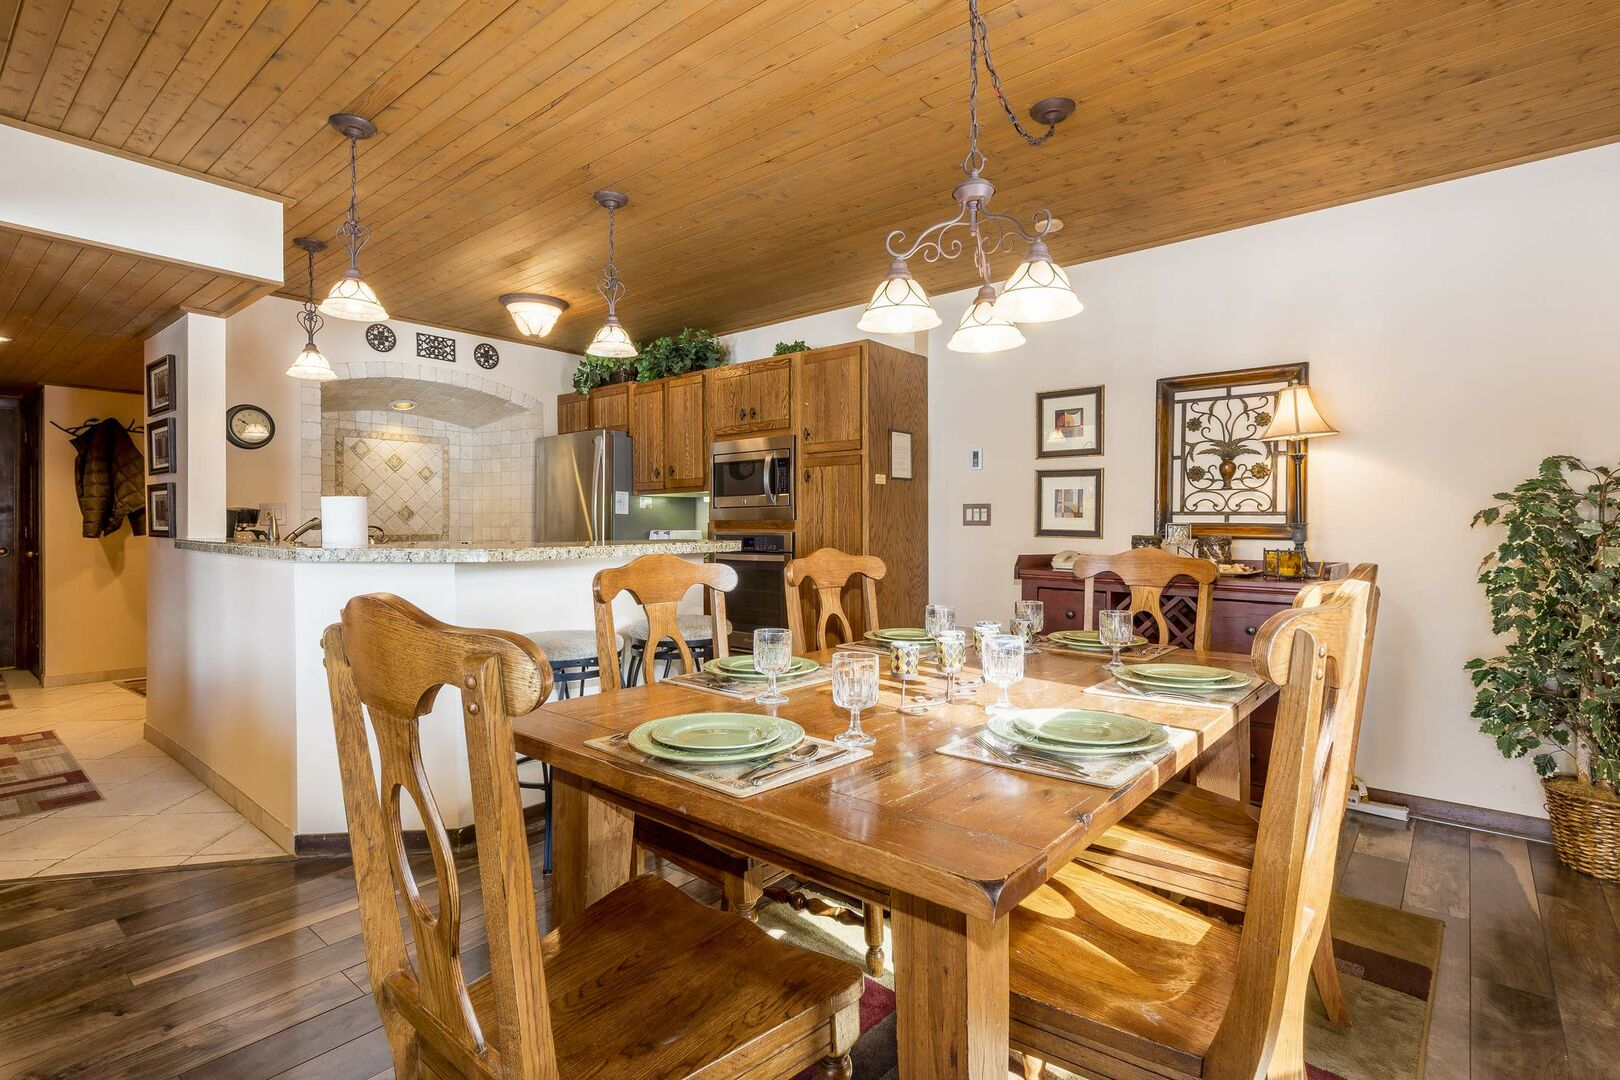 Large dining room table with room for six guests